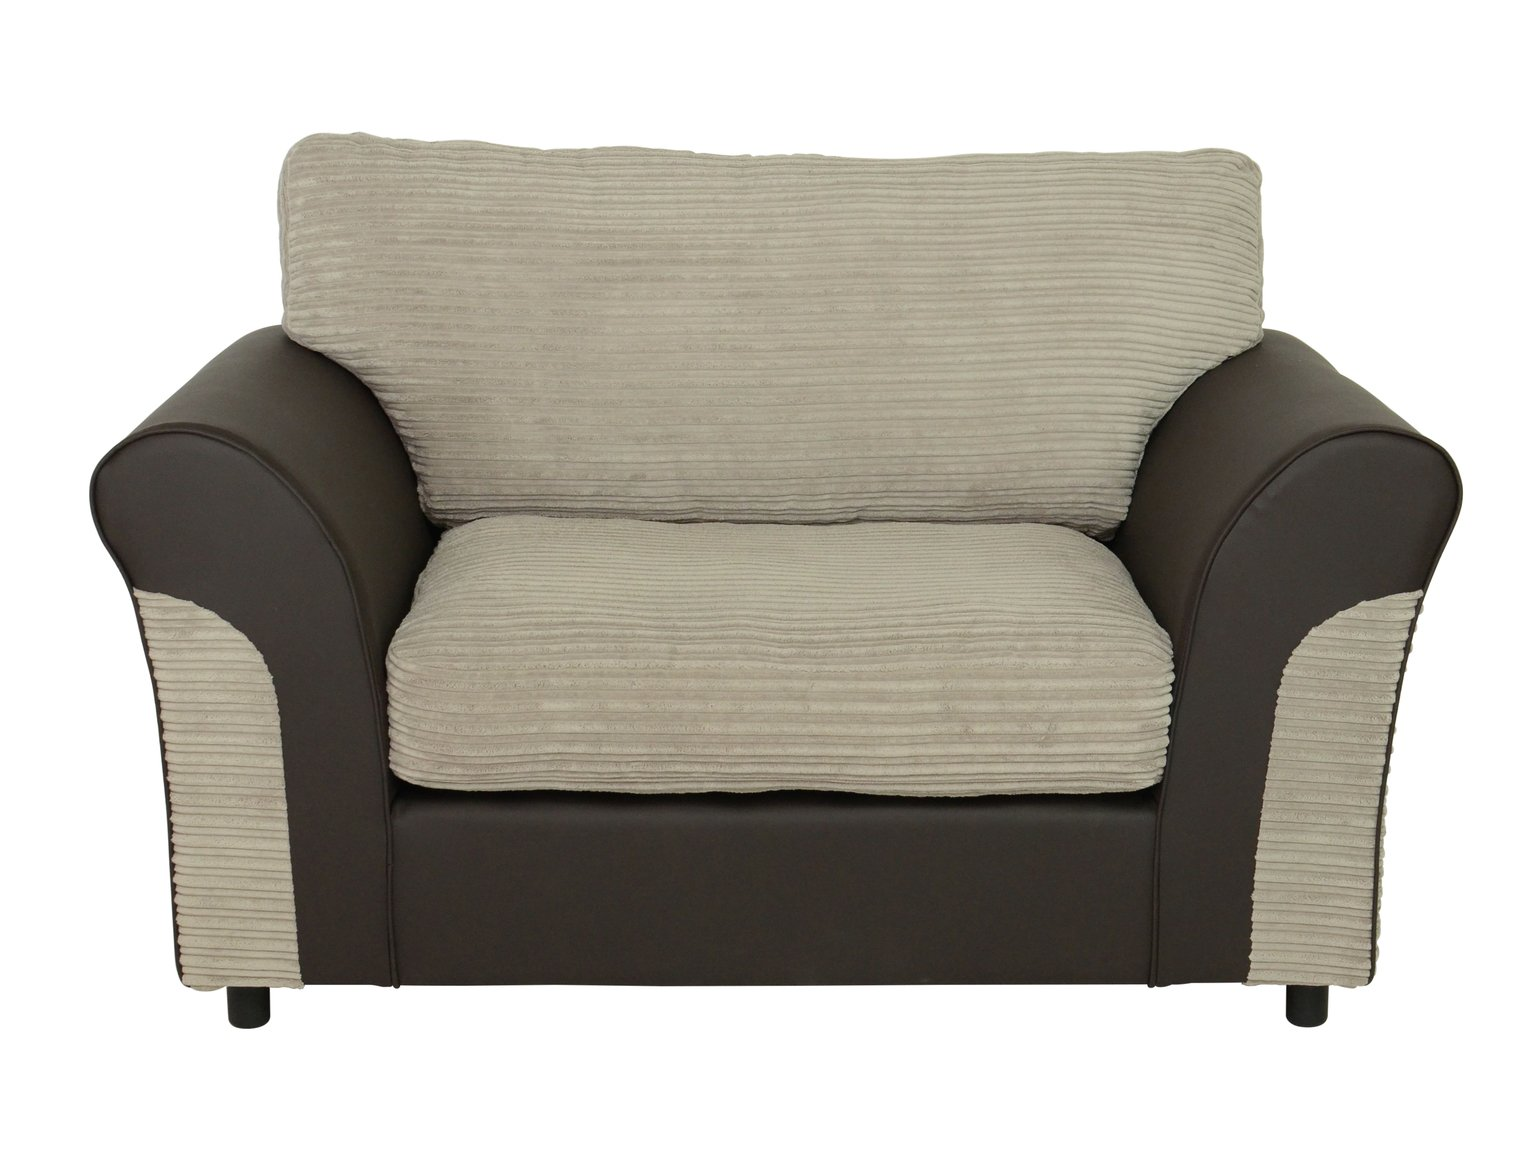 Argos Home Harry Fabric Cuddle Chair - Natural